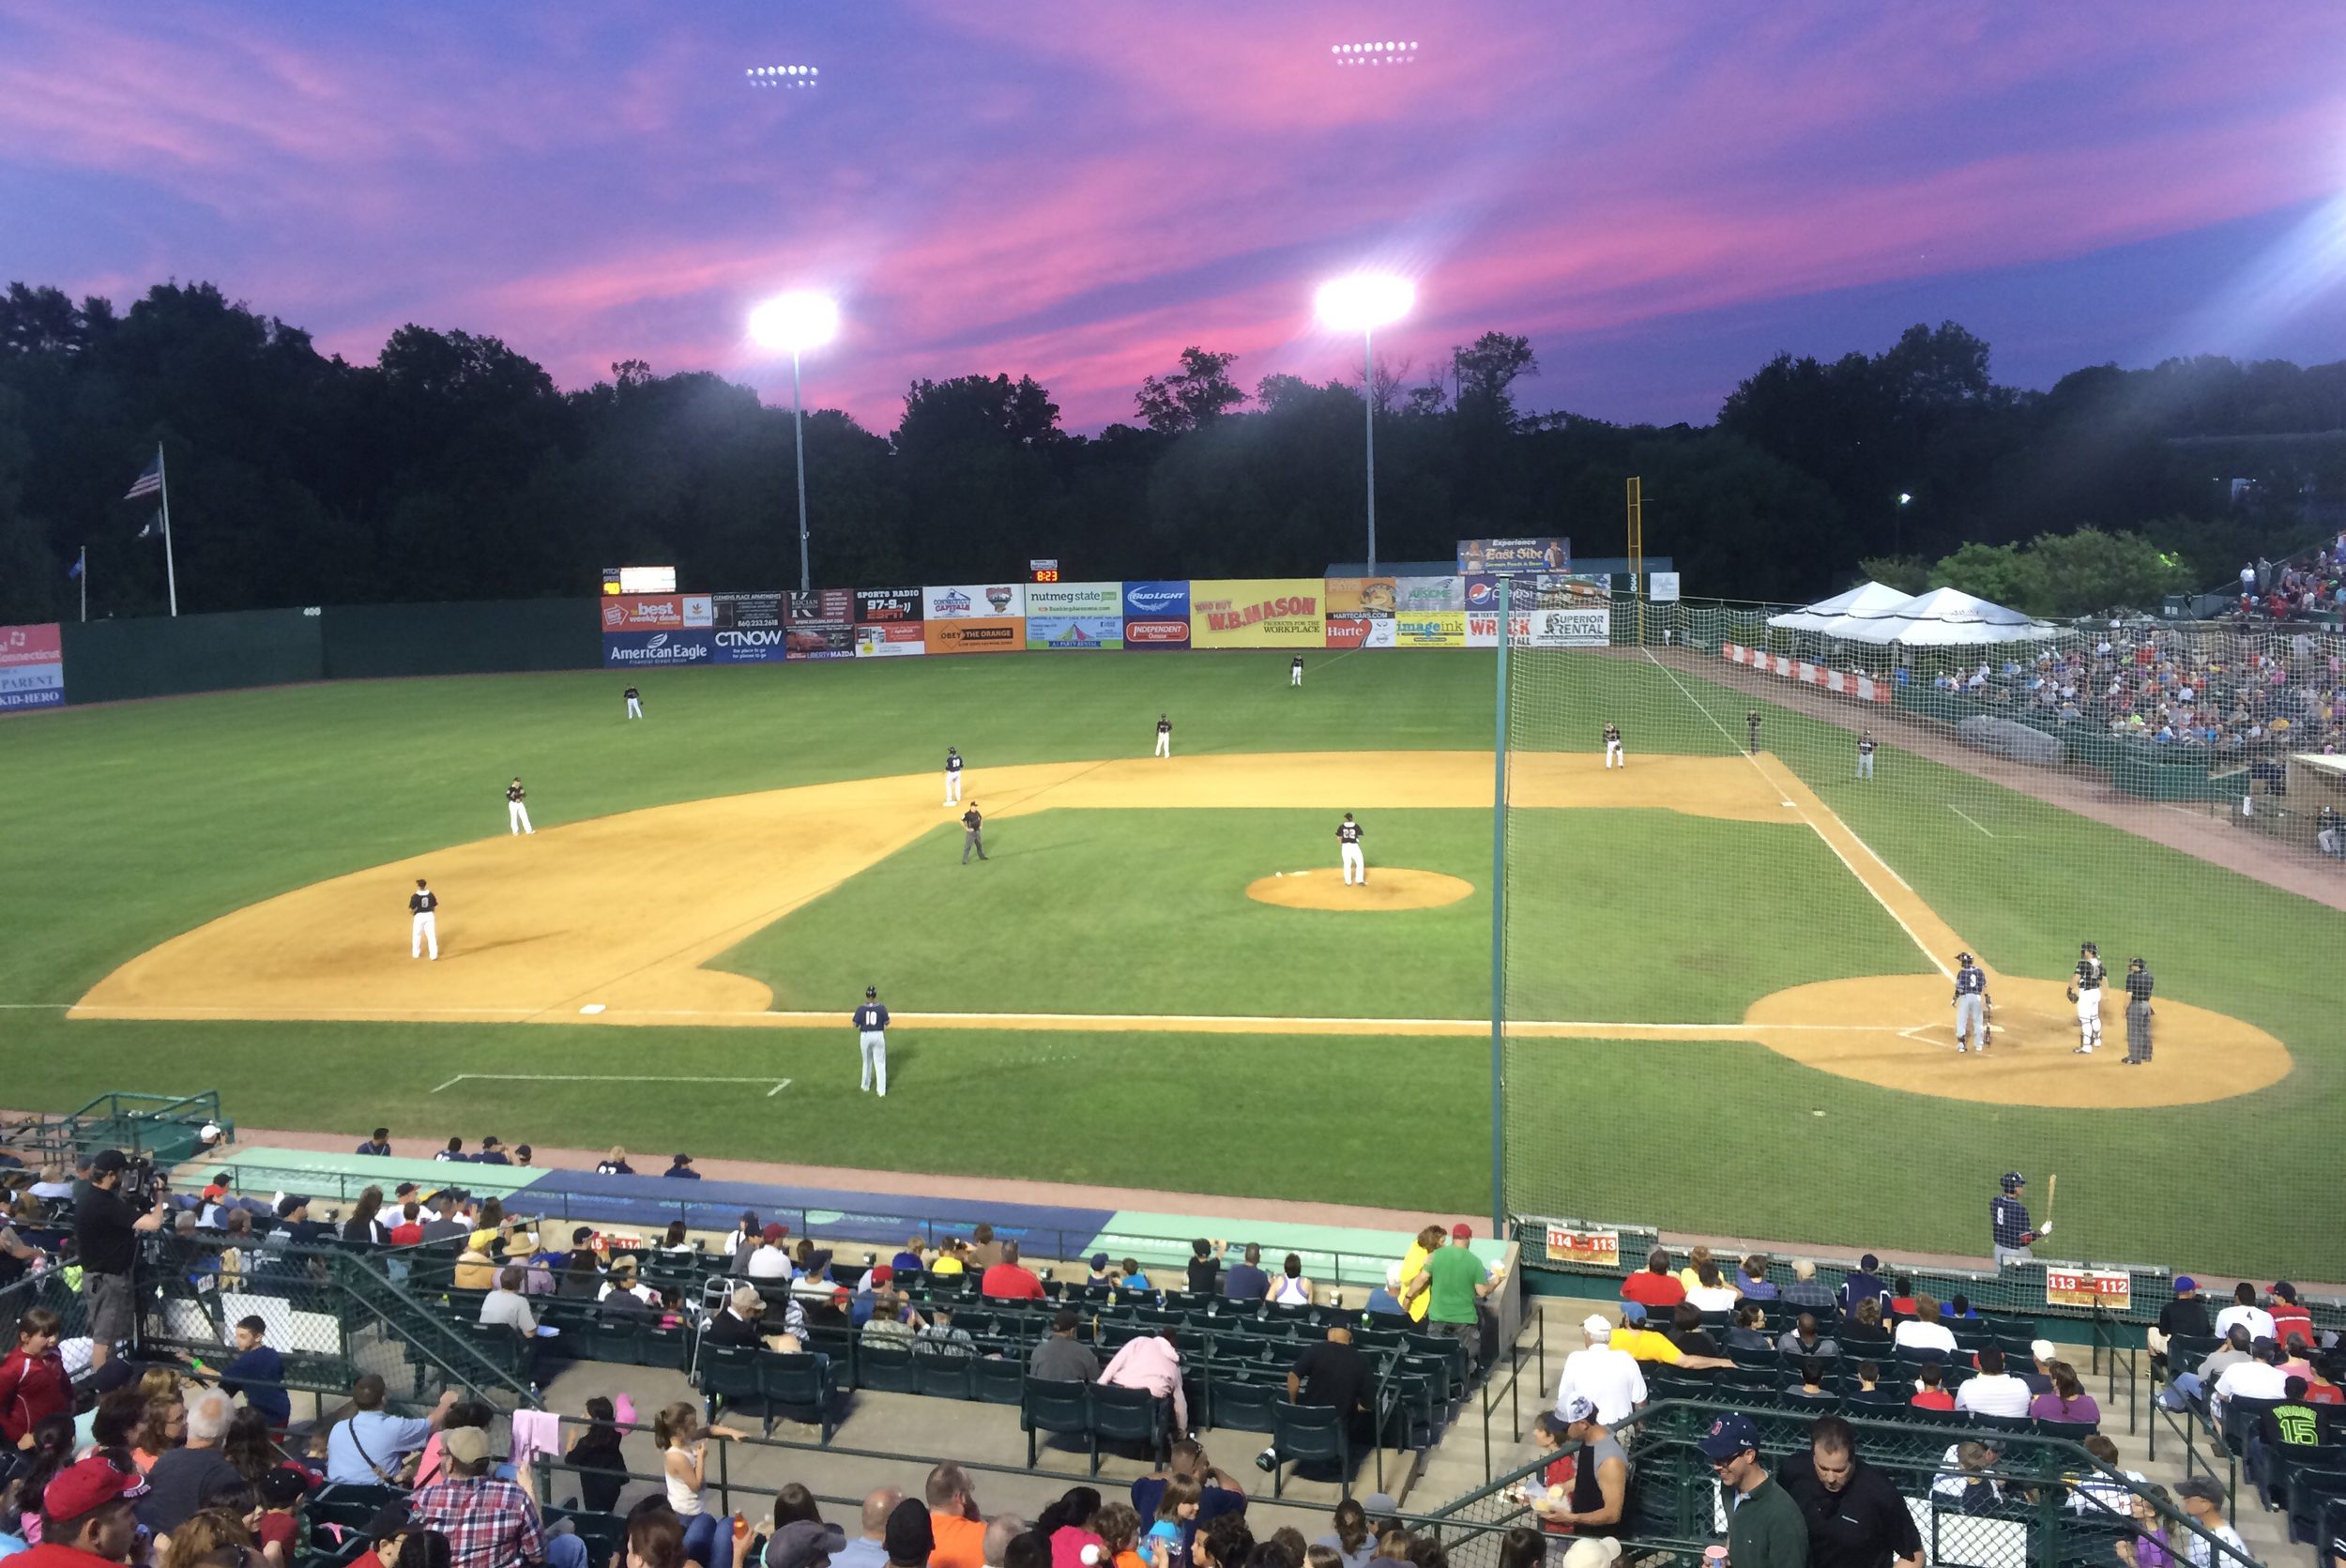 In this photo provided by the author, the New Britain Rock Cats play in a game at New Britain Stadium on May 29, 2015. The team is relocating to Hartford, where it will be re-branded as the Hartford Yard Goats.(Courtesy/Daniel Madigan)